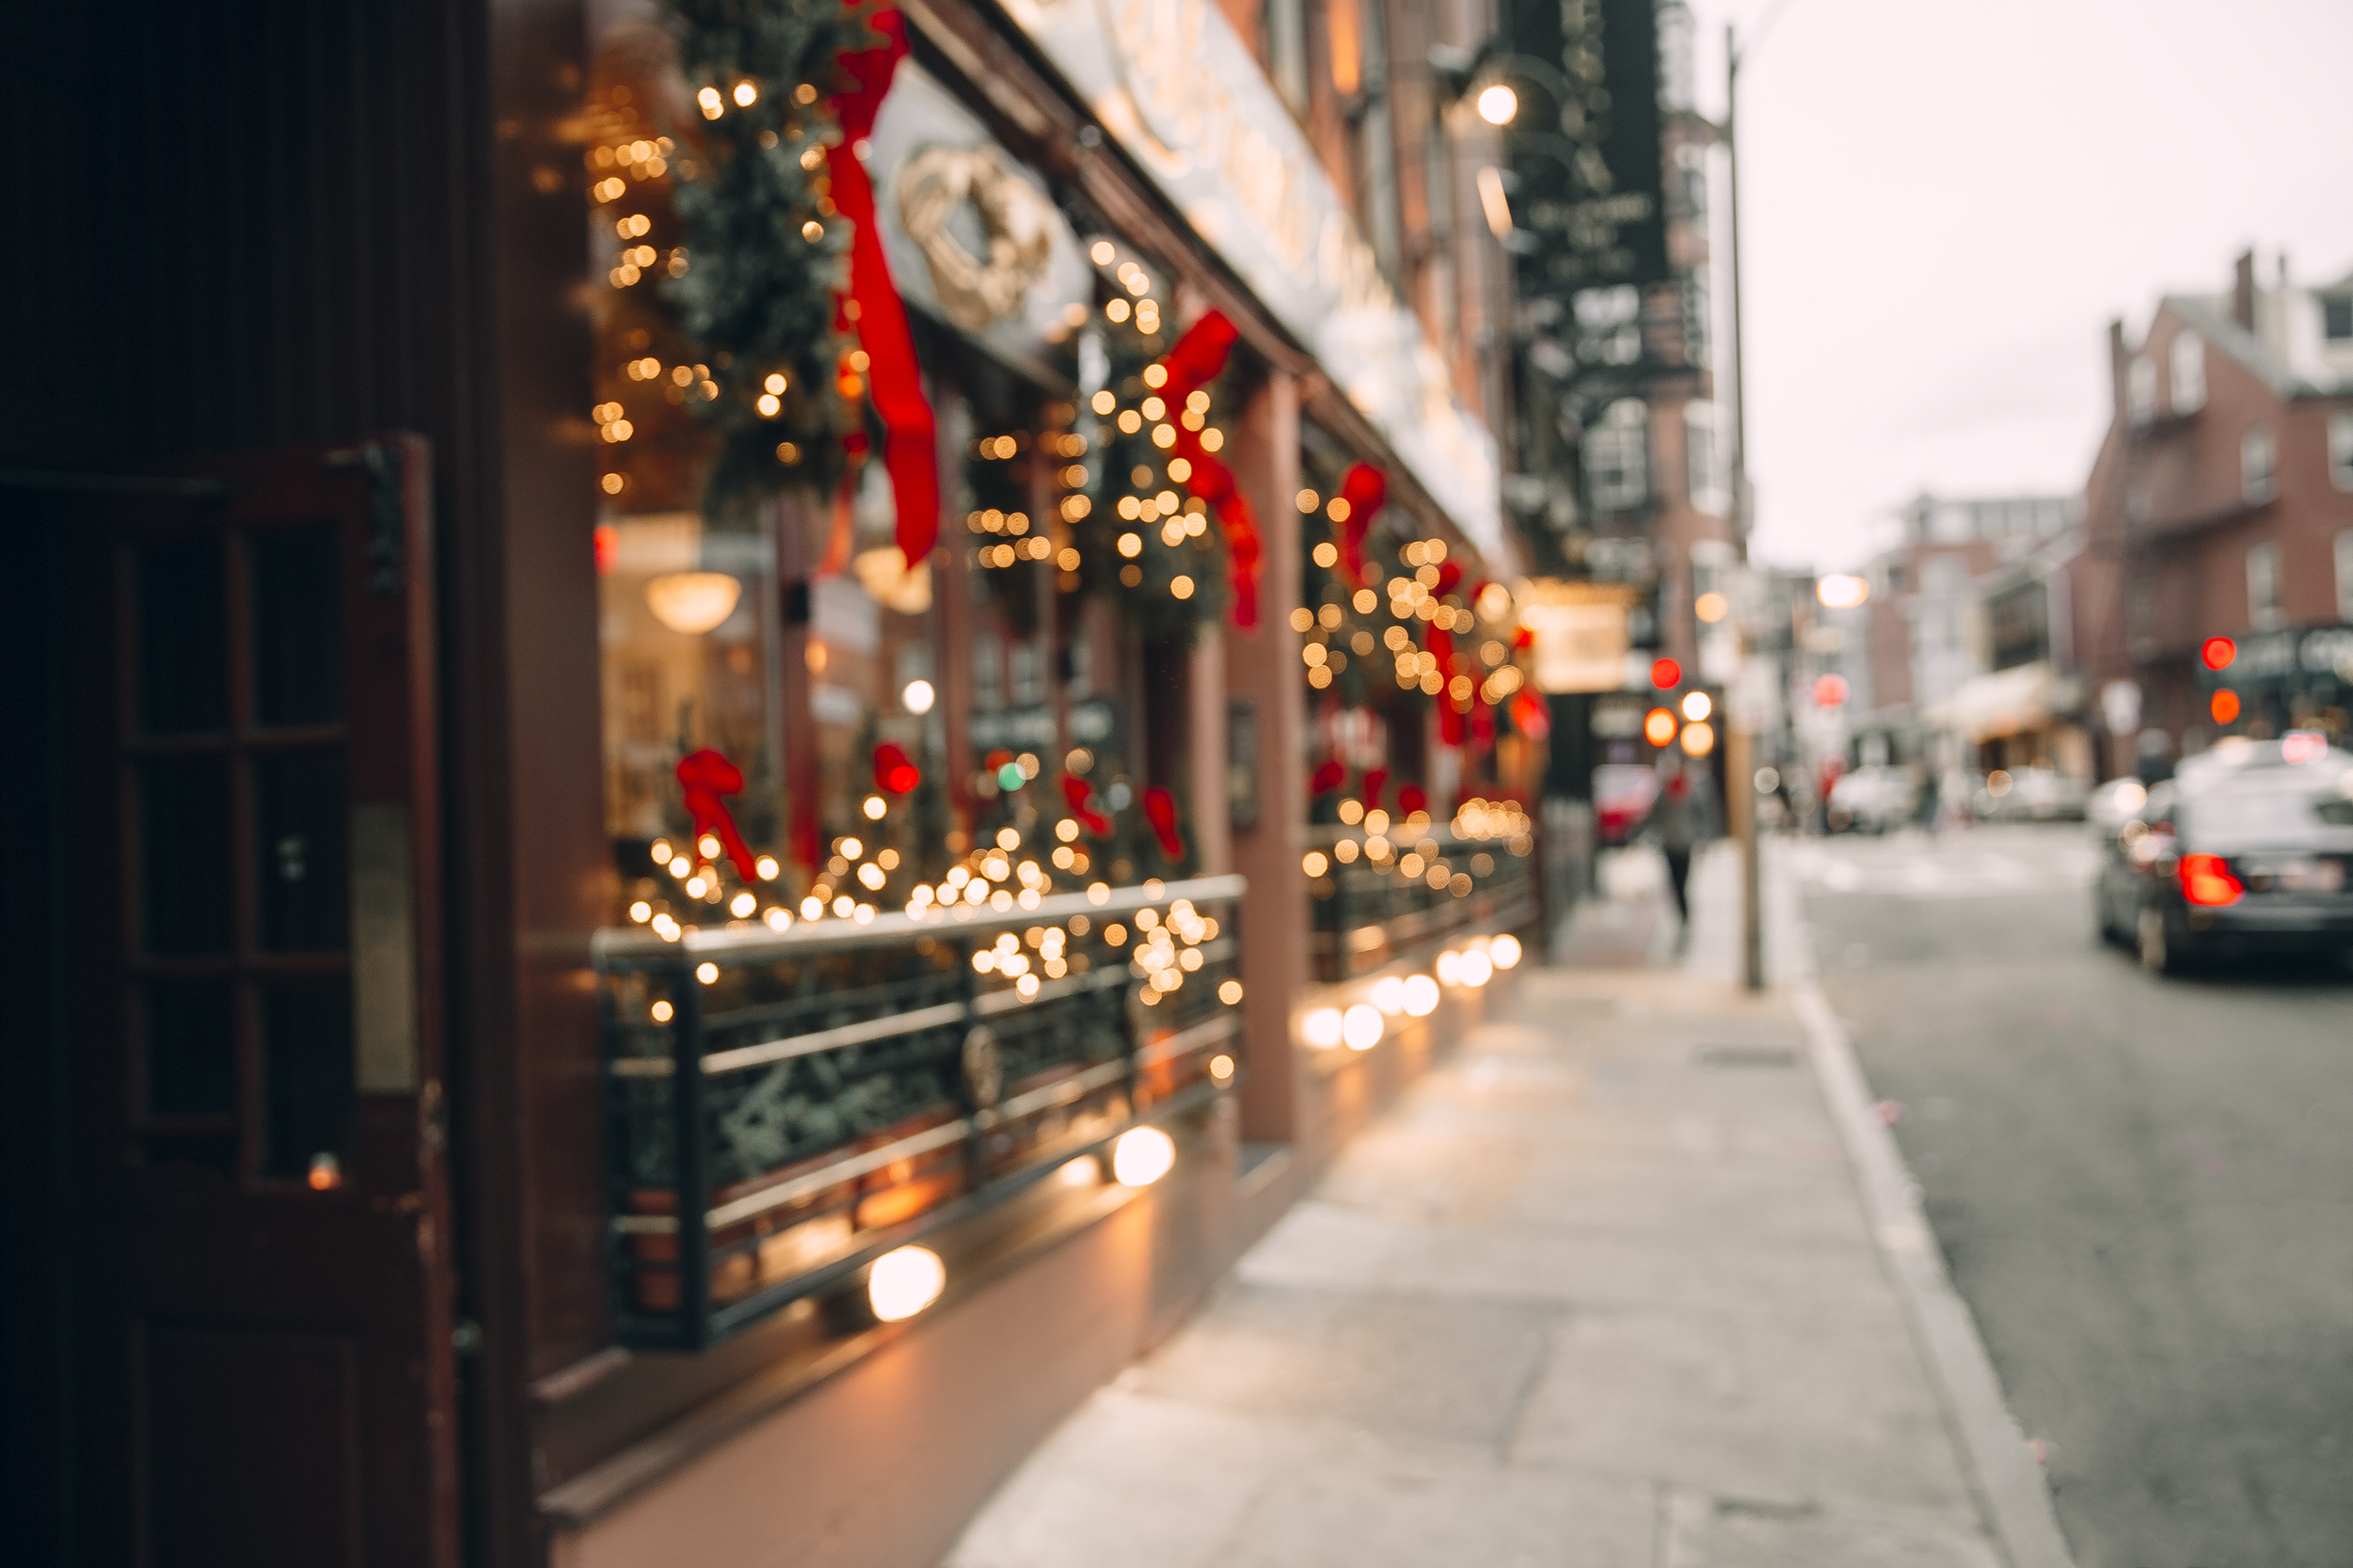 Reisetipp: Christmas Shopping in den USA | MEIERS WELTREISEN